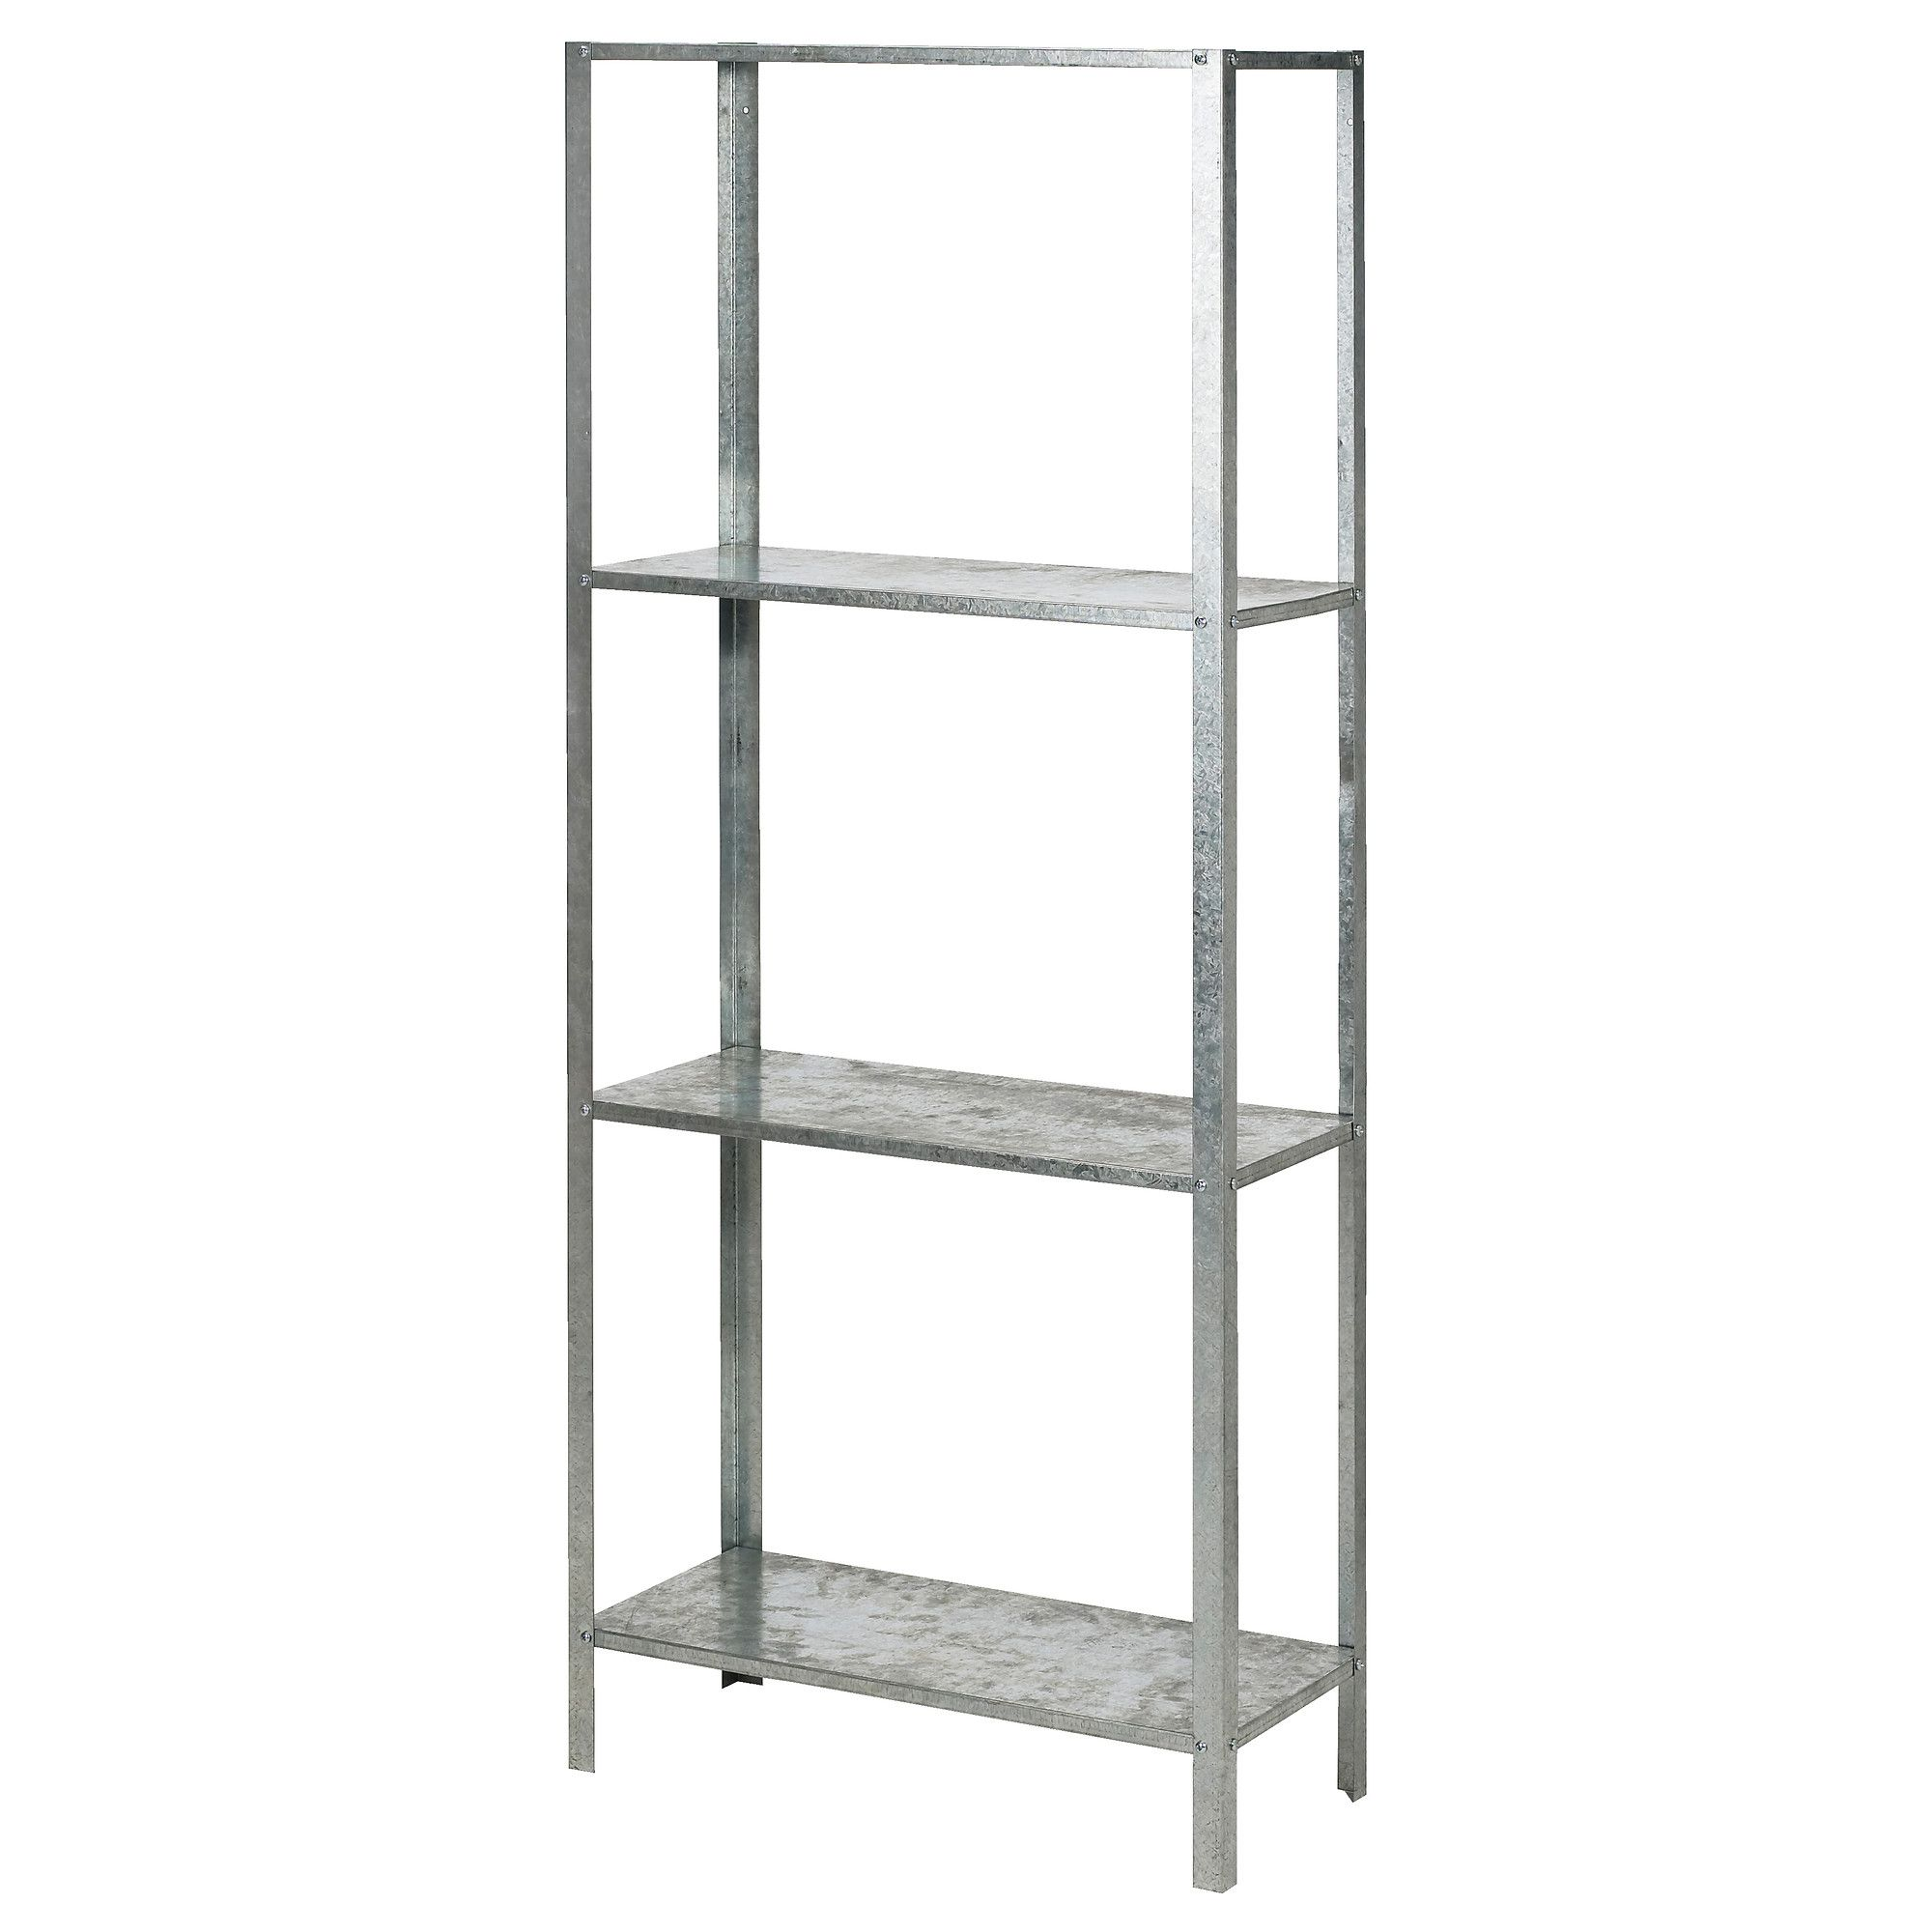 Furniture Home Furnishings Find Your Inspiration Ikea Shelves Ikea Shelves